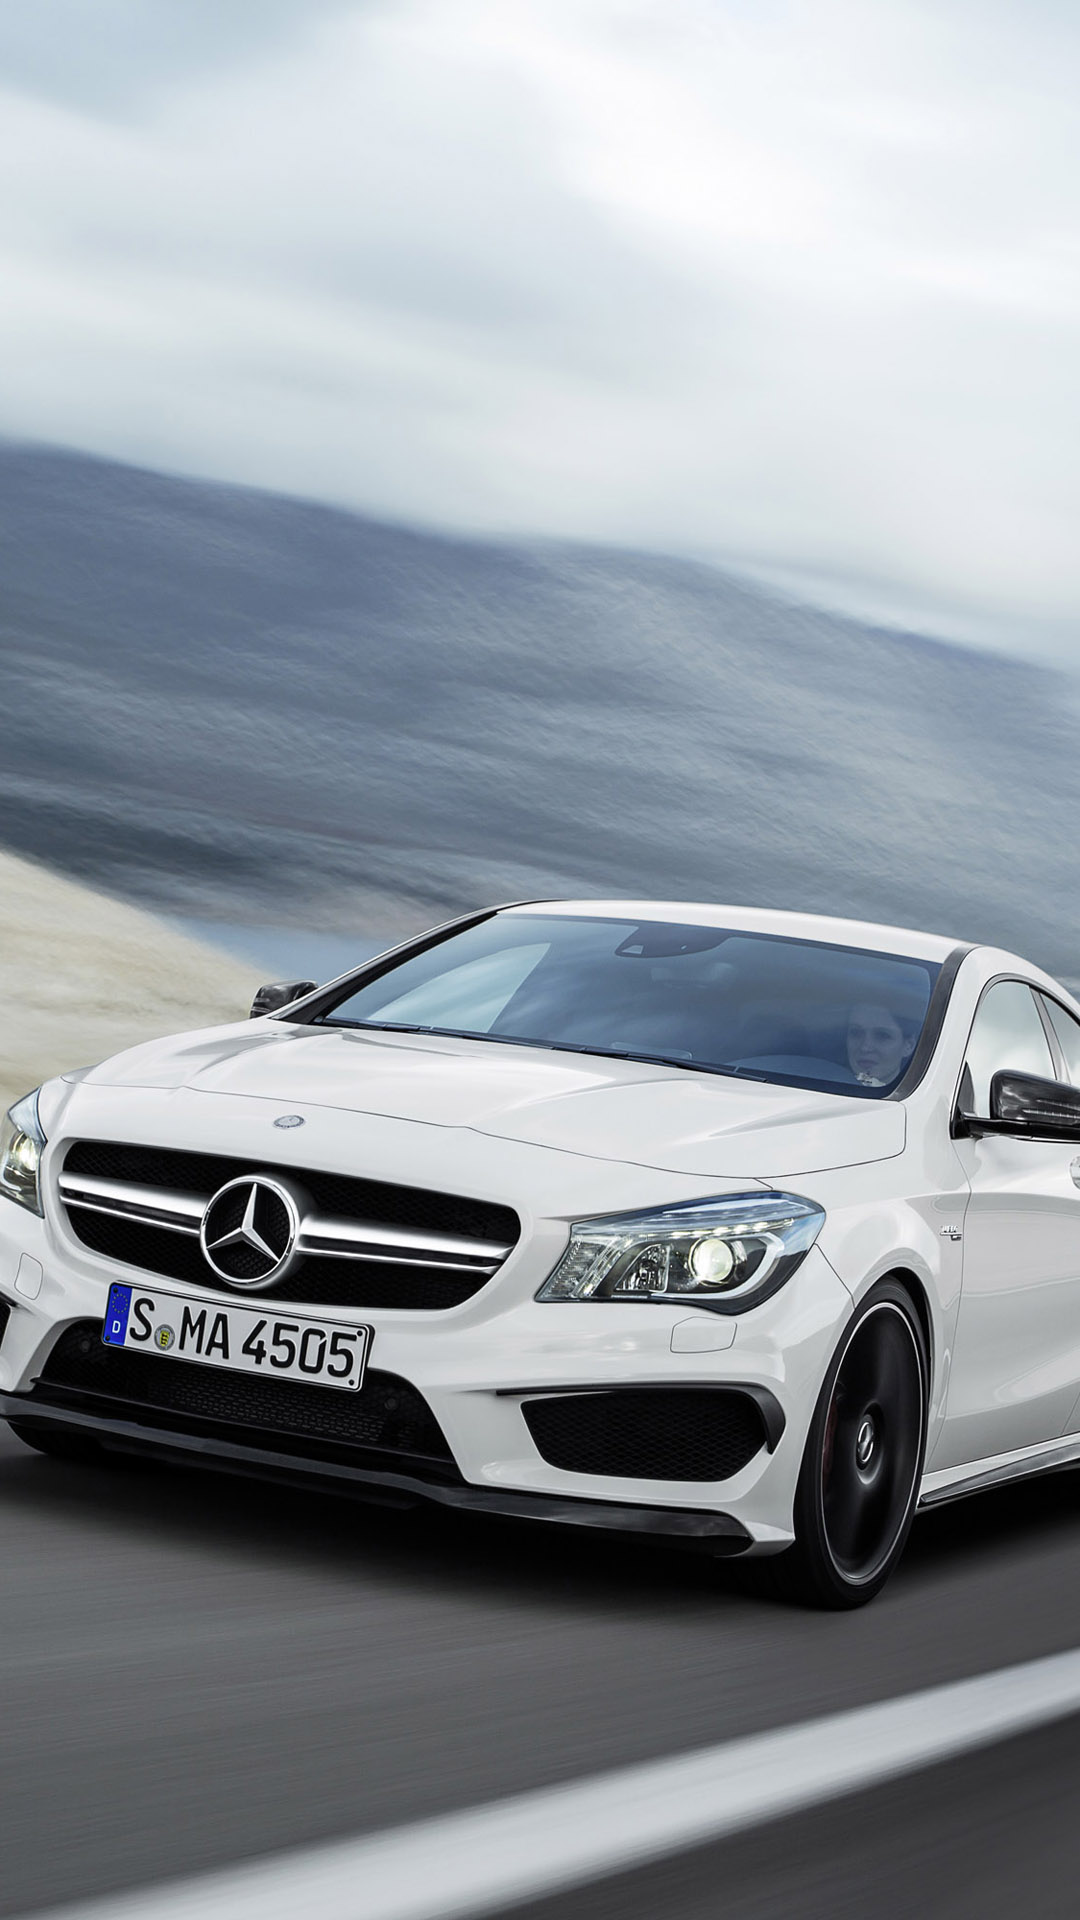 Mercedes Benz CLA 45 AMG   Best htc one wallpapers and easy 1080x1920